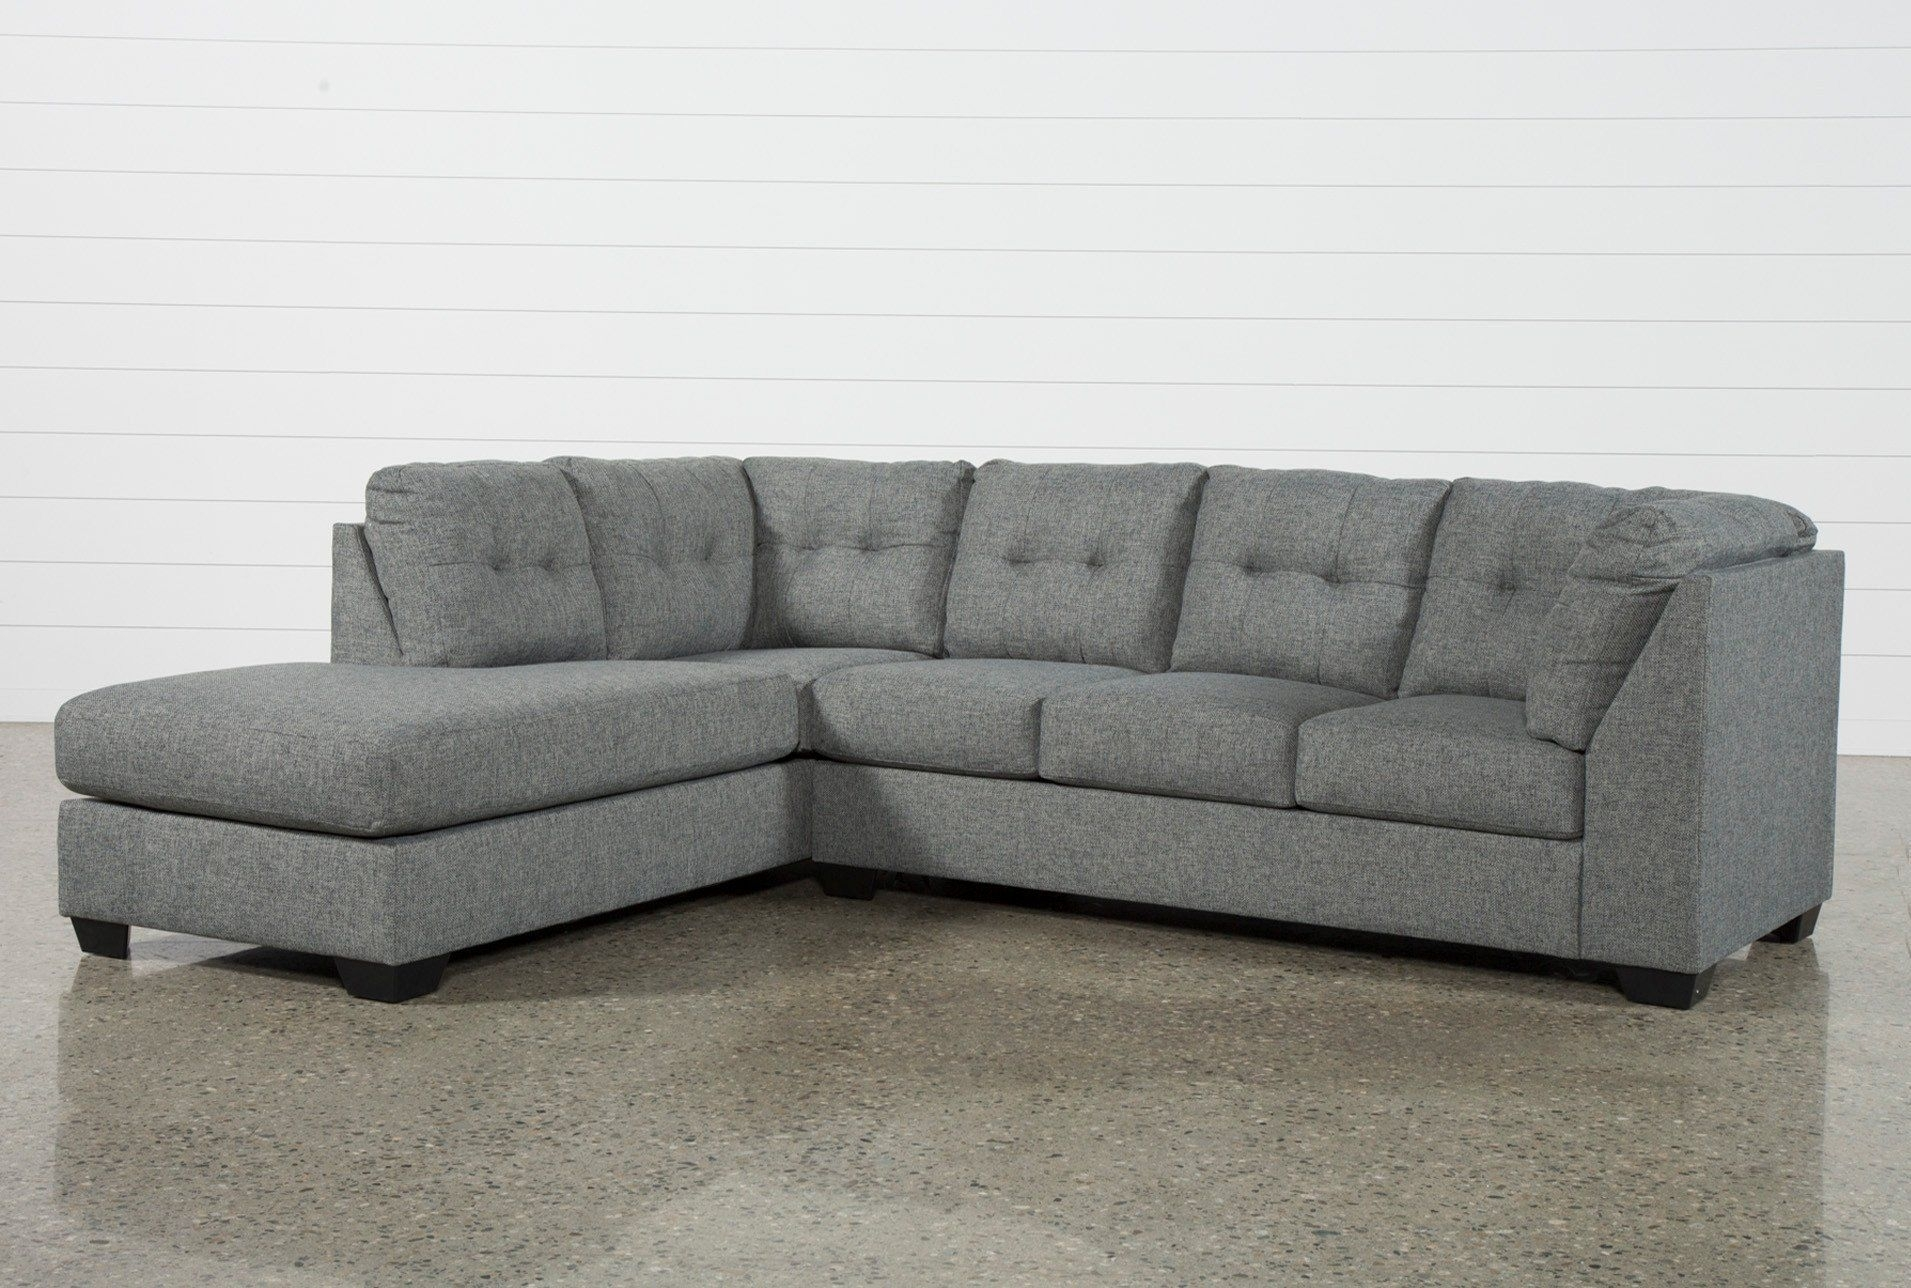 Cosmos Grey 2 Piece Sectional W/laf Chaise | Quilling | Pinterest Regarding Cosmos Grey 2 Piece Sectionals With Raf Chaise (Image 5 of 25)